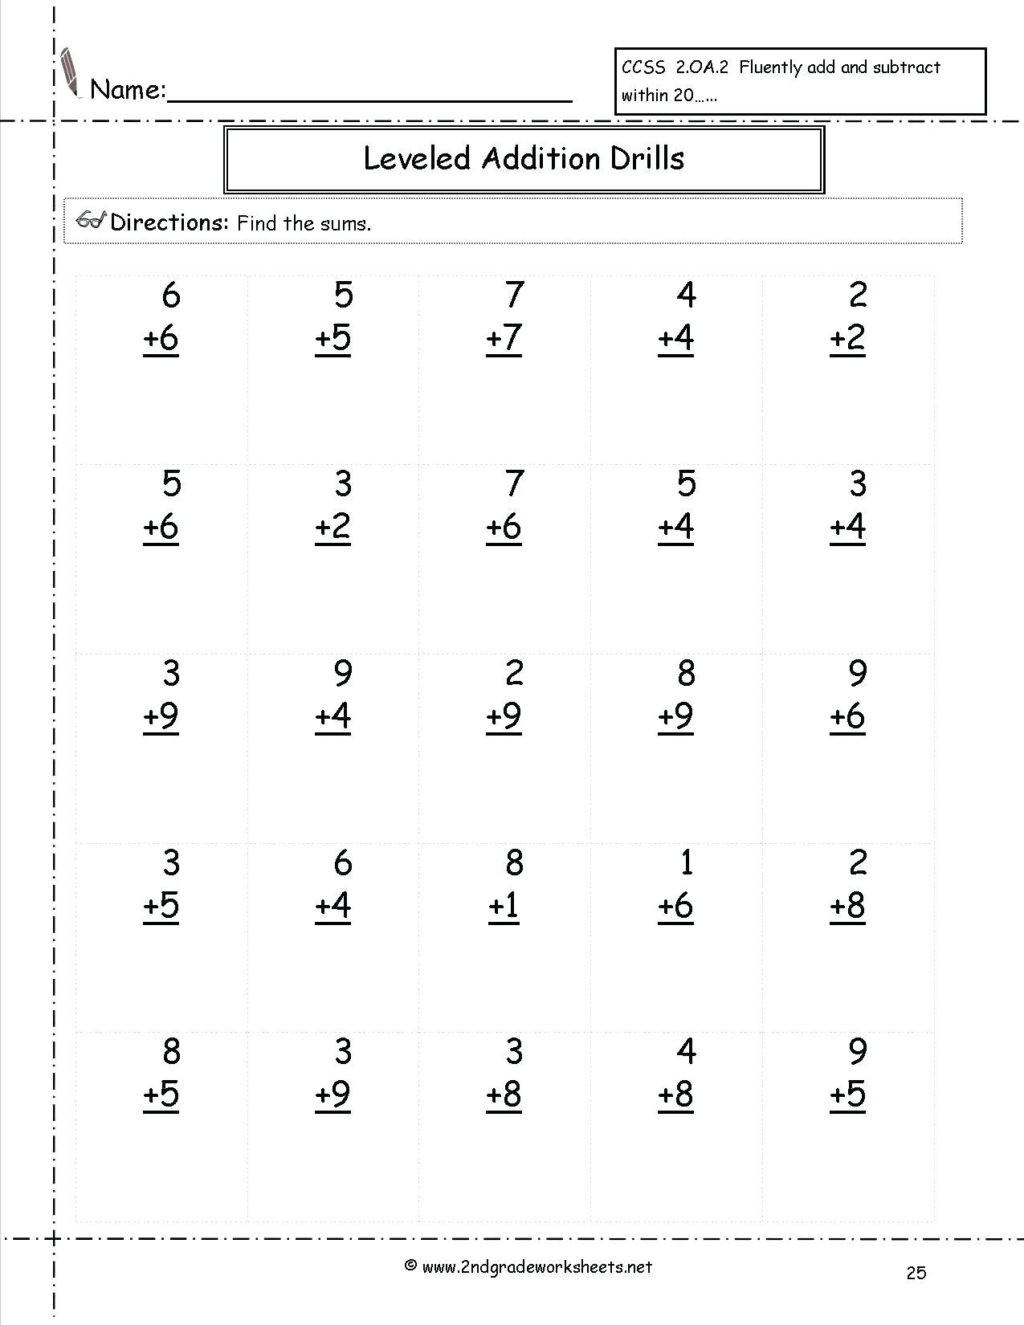 hight resolution of Multiplication Array Worksheets 3rd Grade   Printable Worksheets and  Activities for Teachers